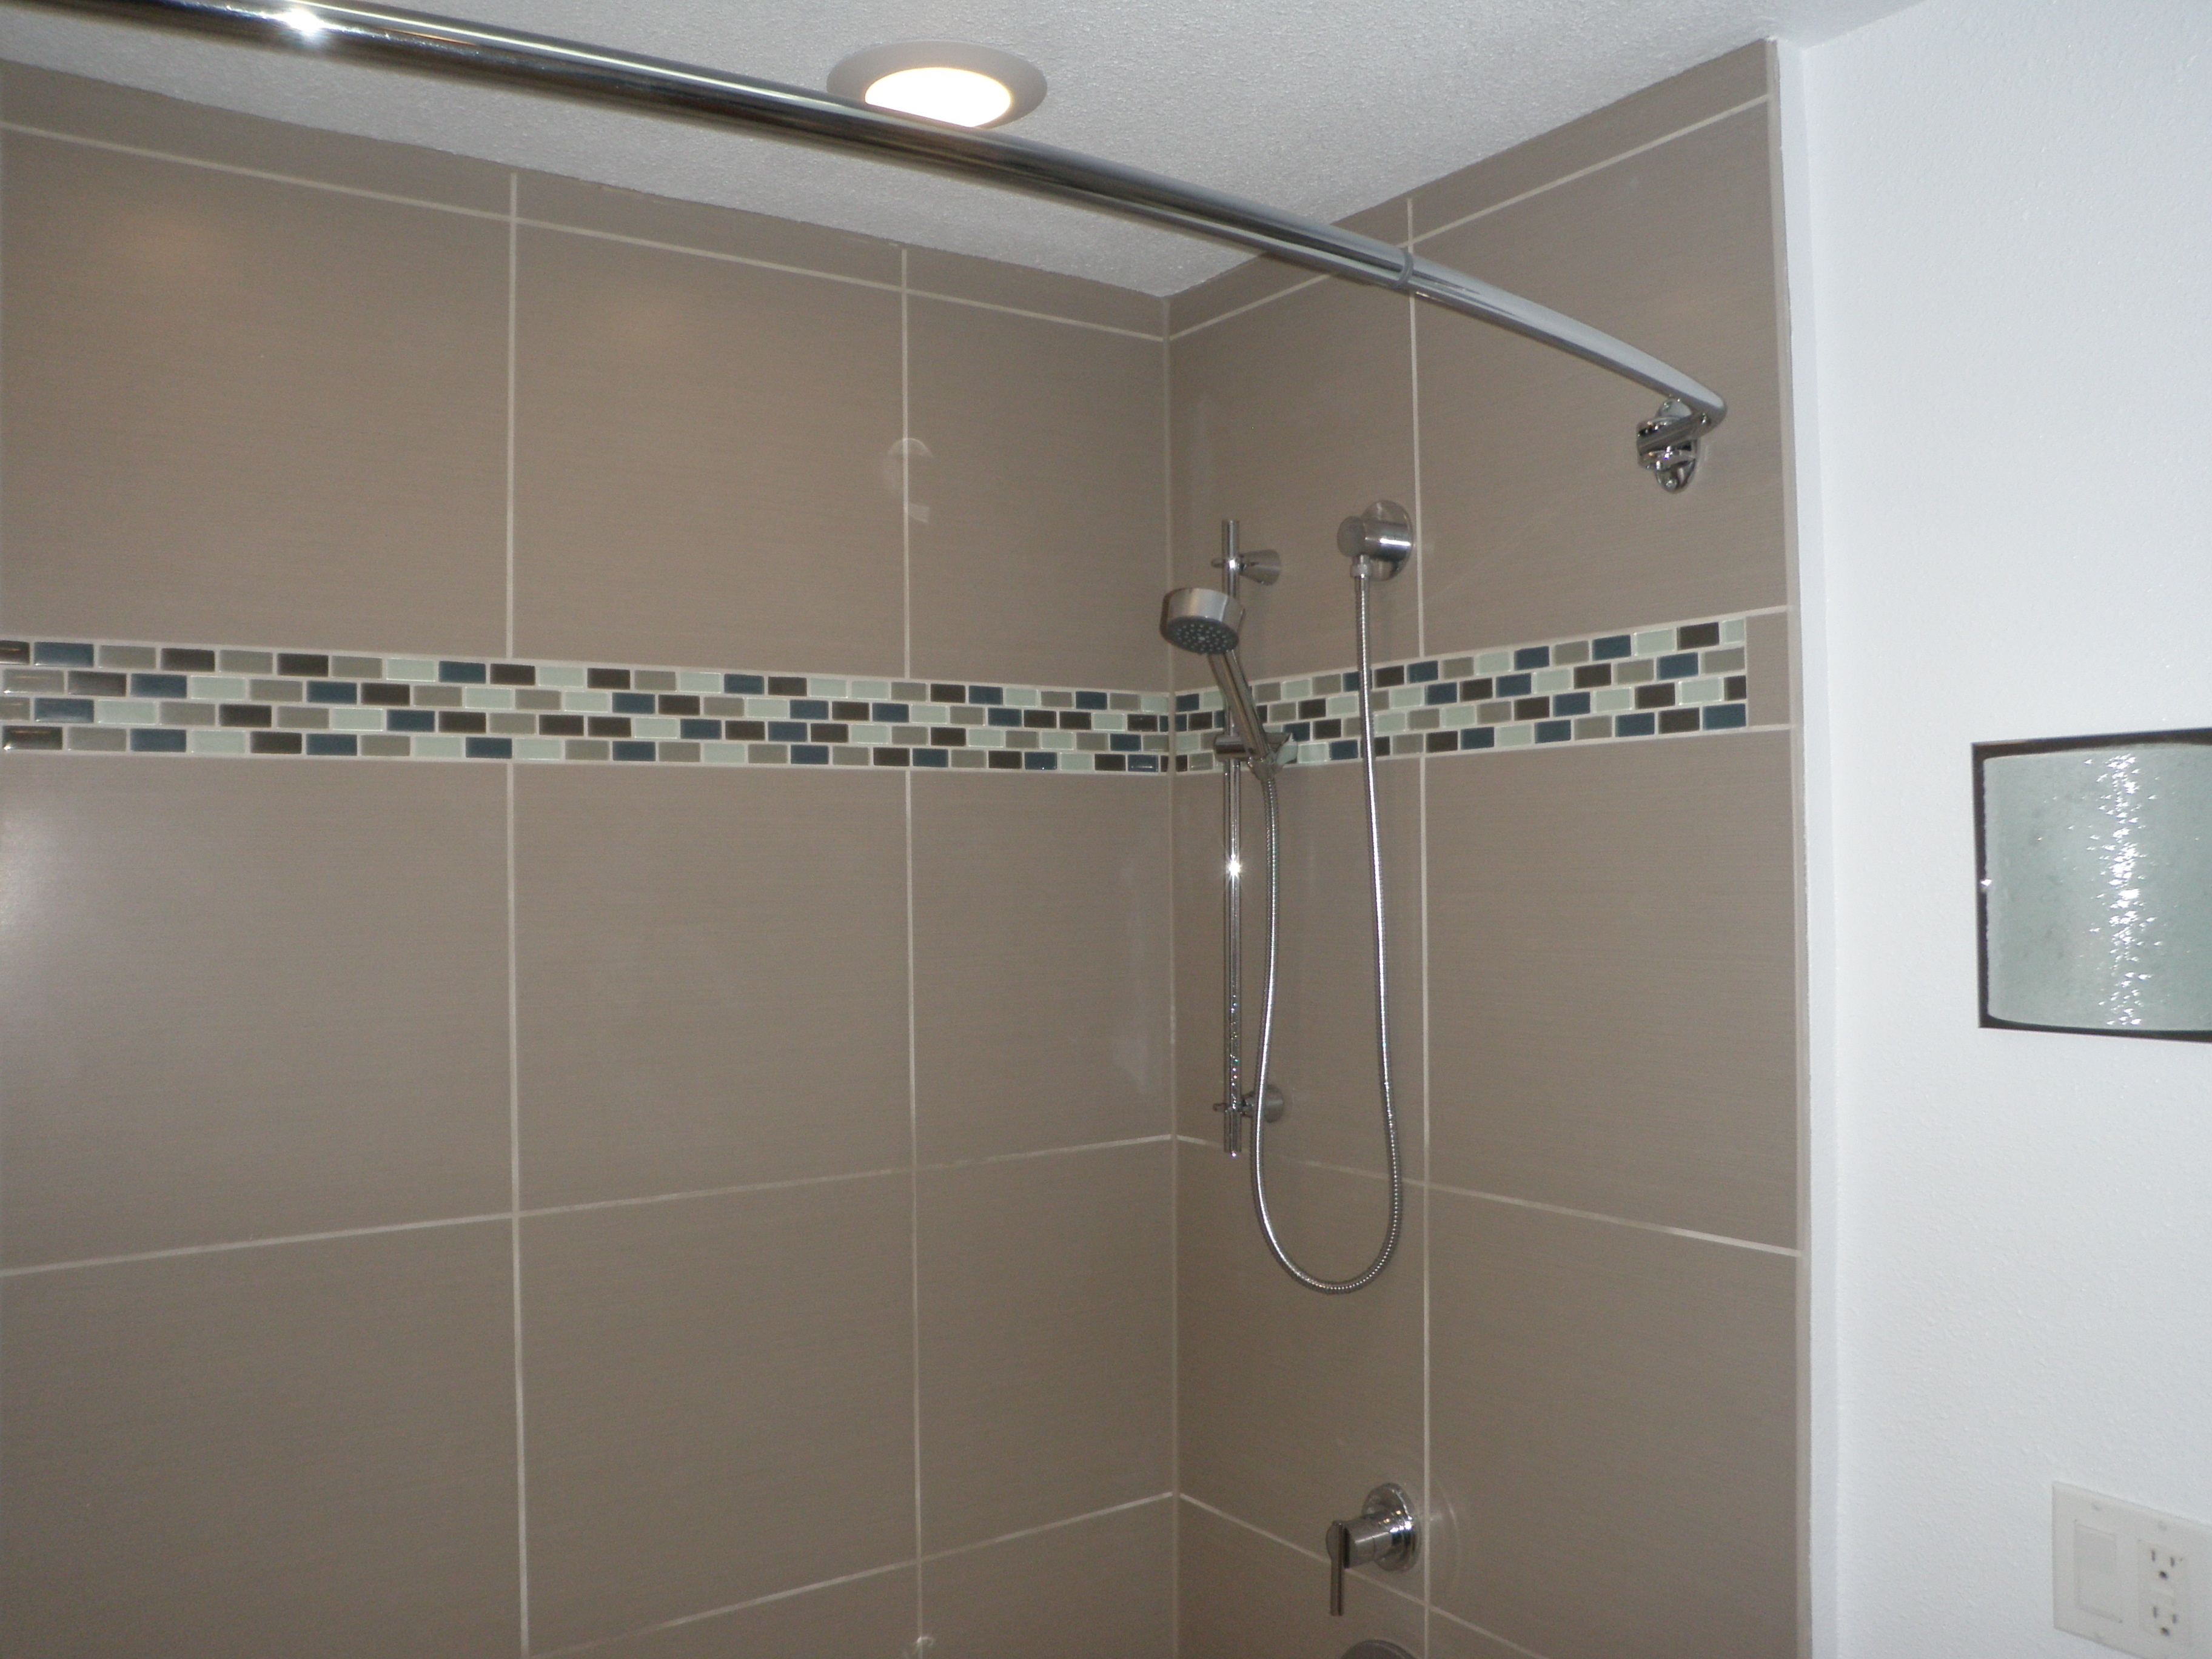 Curved Shower Rods Are Becoming More Popular, Particularly Where The Space  Inside The Tub Area Is Limited. These Types Of Rods Are Not Spring Loaded  Like ...